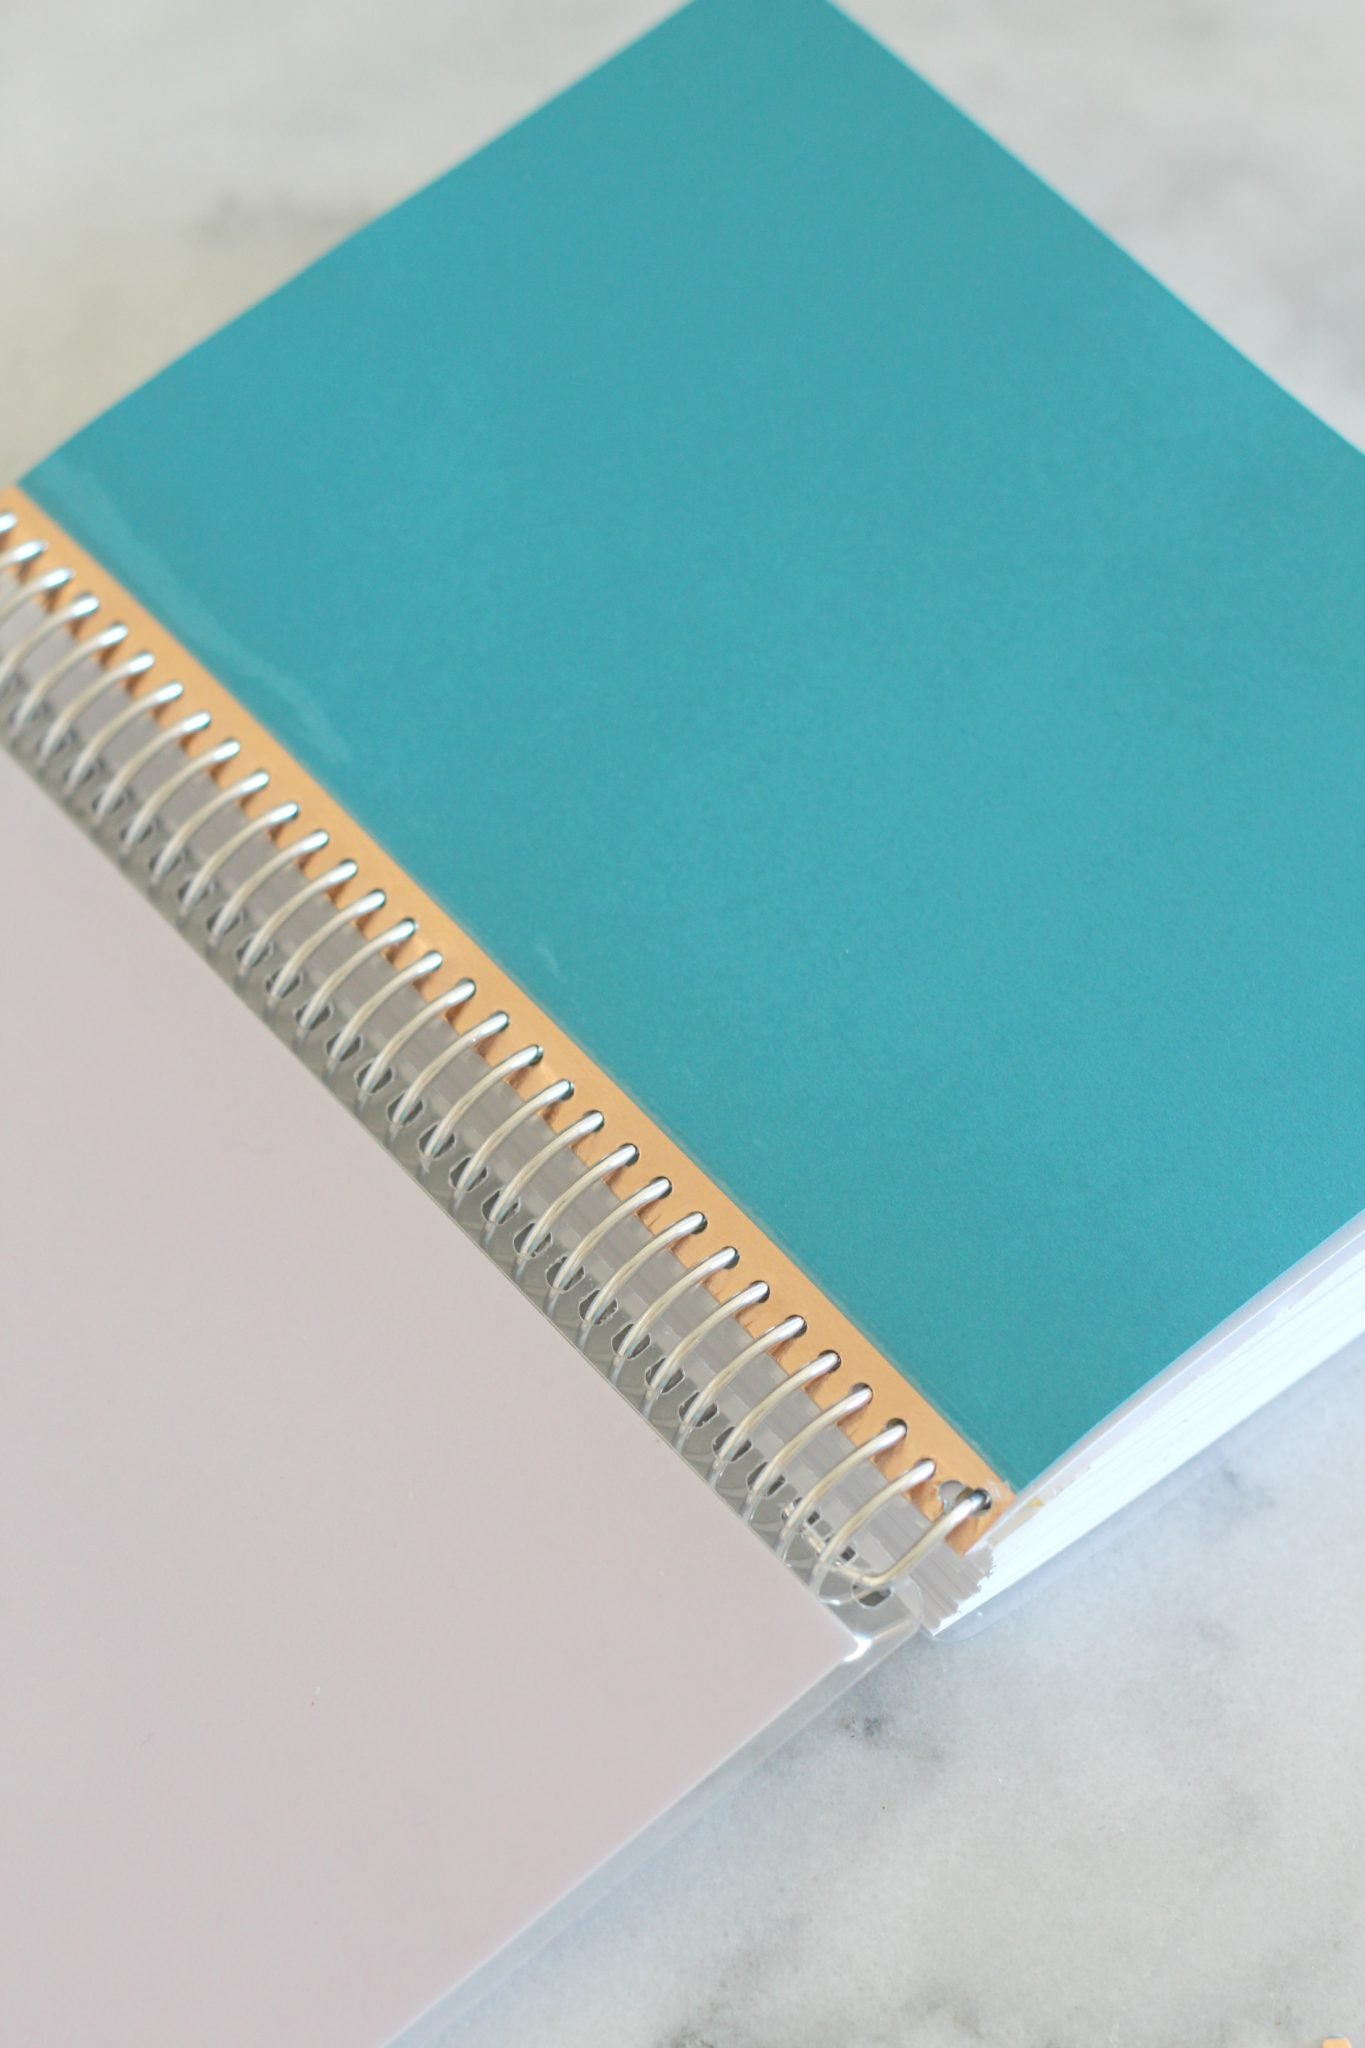 How to add pages to a spiral bound planner.